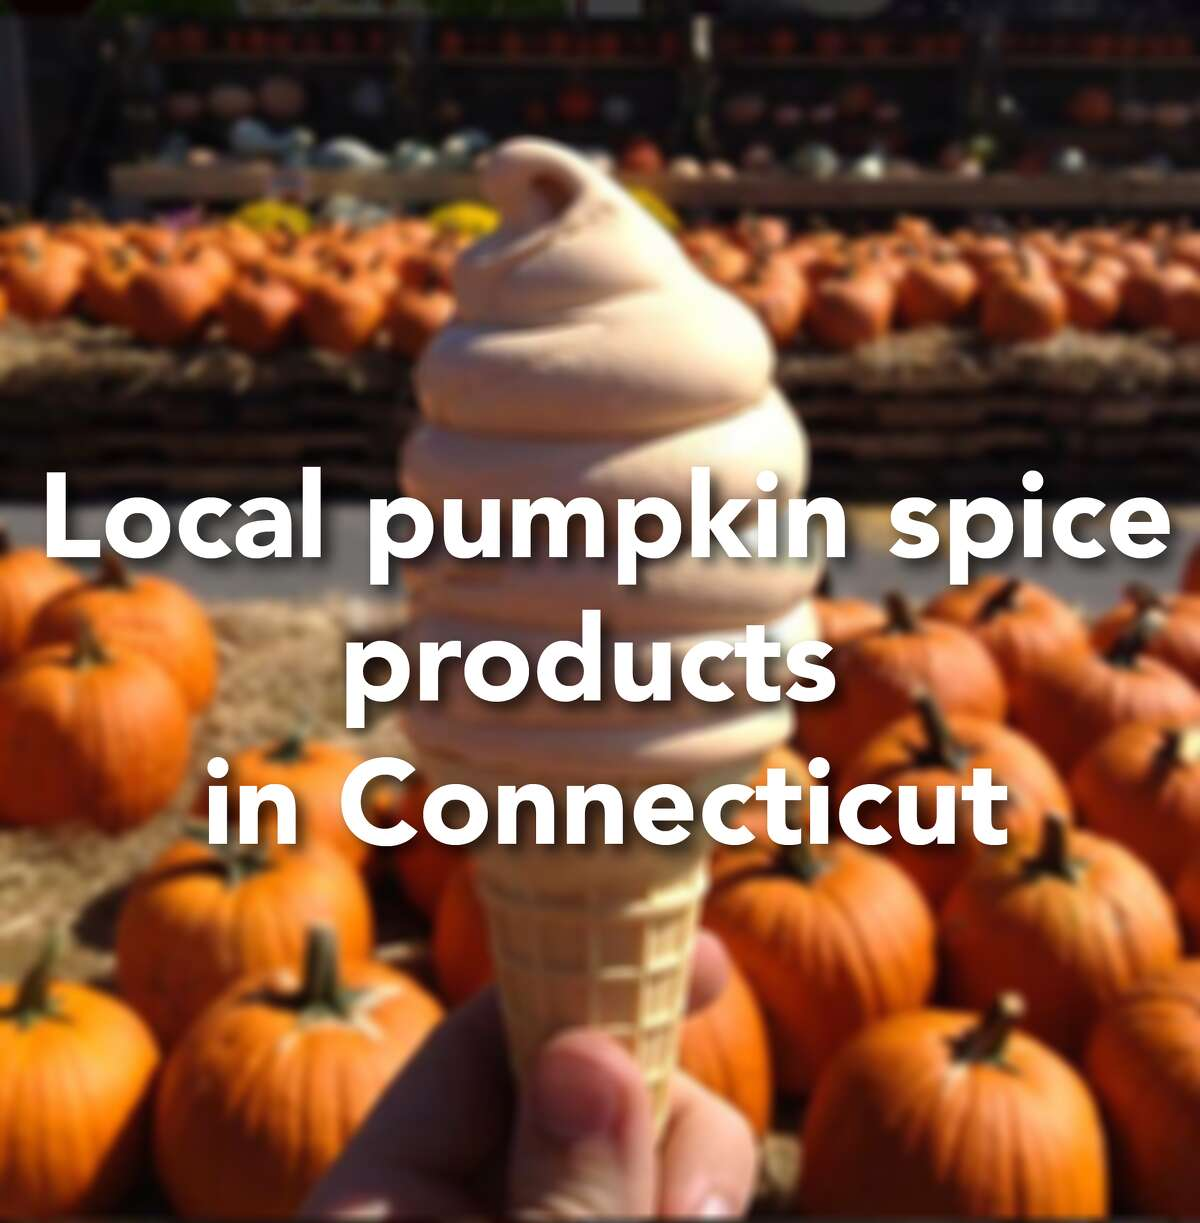 Click through the slideshow to see just some of the places you can find local pumpkin spice products in Connecticut.